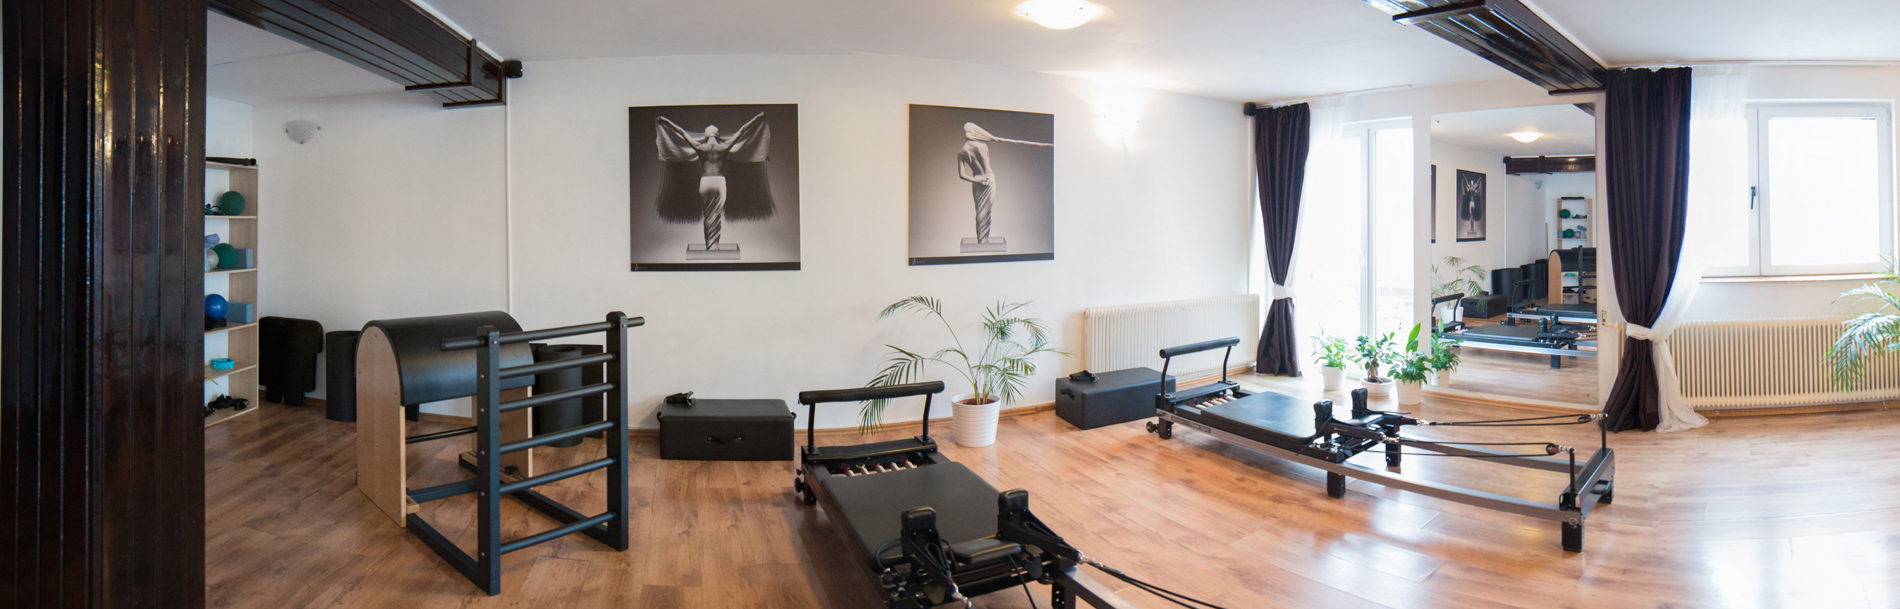 aparate reformer la movement studio